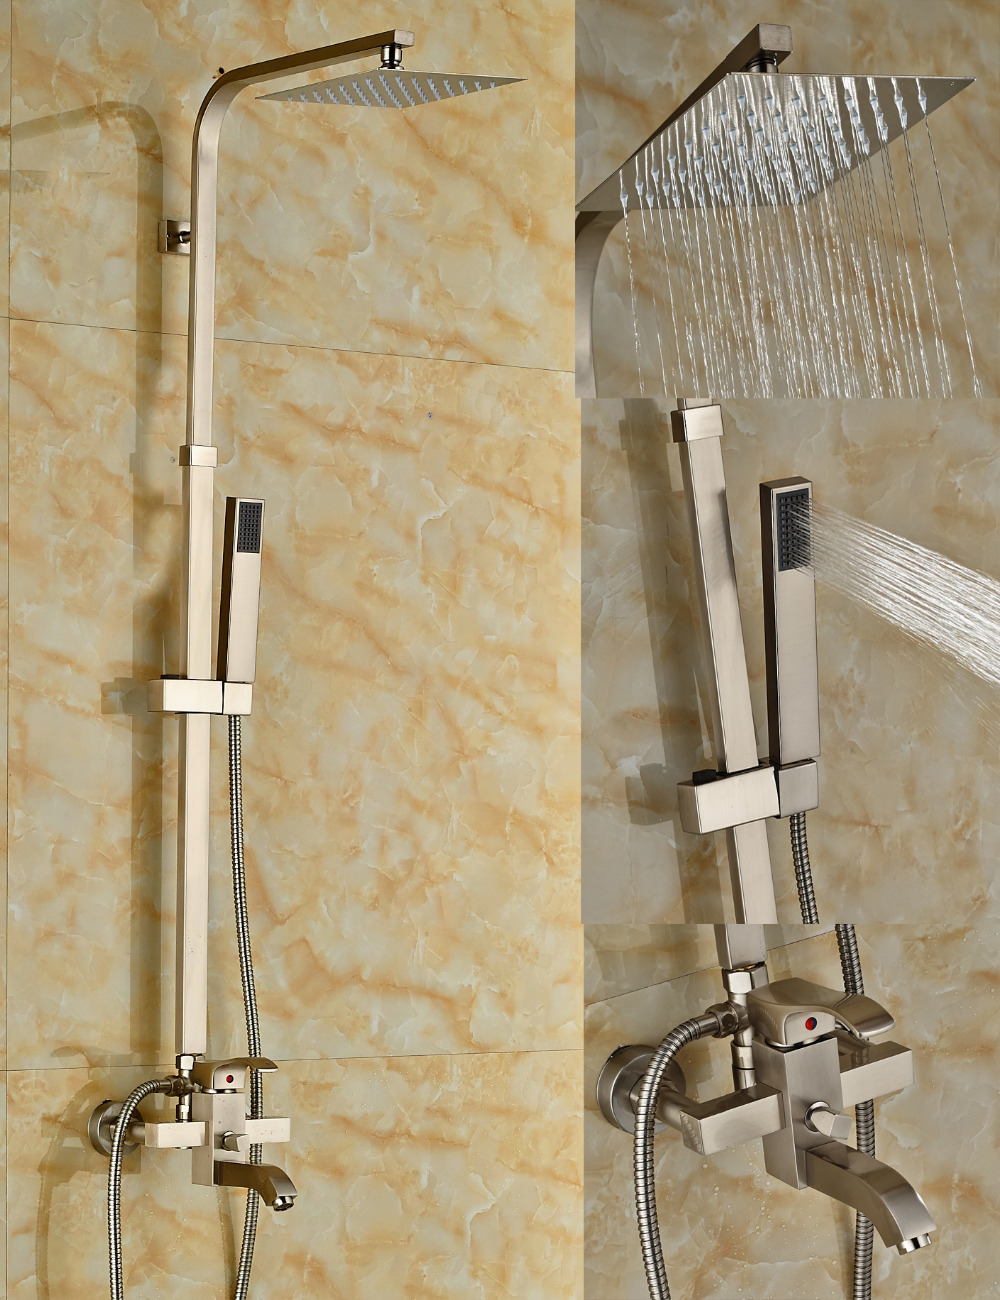 Wholesale And Retail Solid Brass Nickel Brushed Rain Shower Faucet Tub Mixer Tap Valve W/ Hand Shower Sprayer